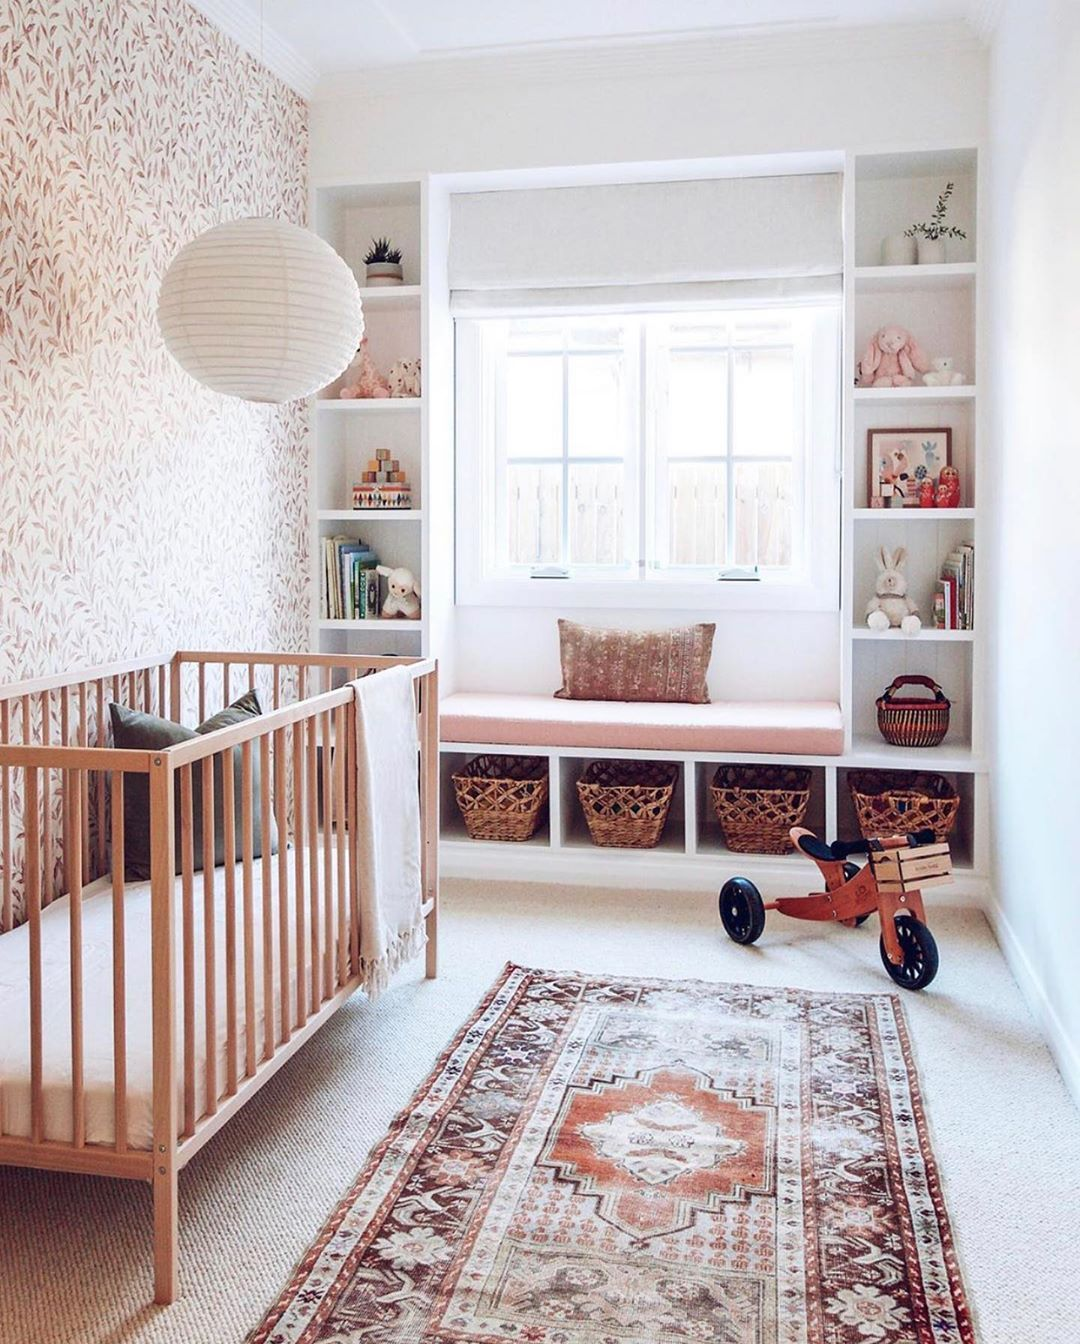 This Nursery Is Pure Perfection We Don T Have Kids Yet